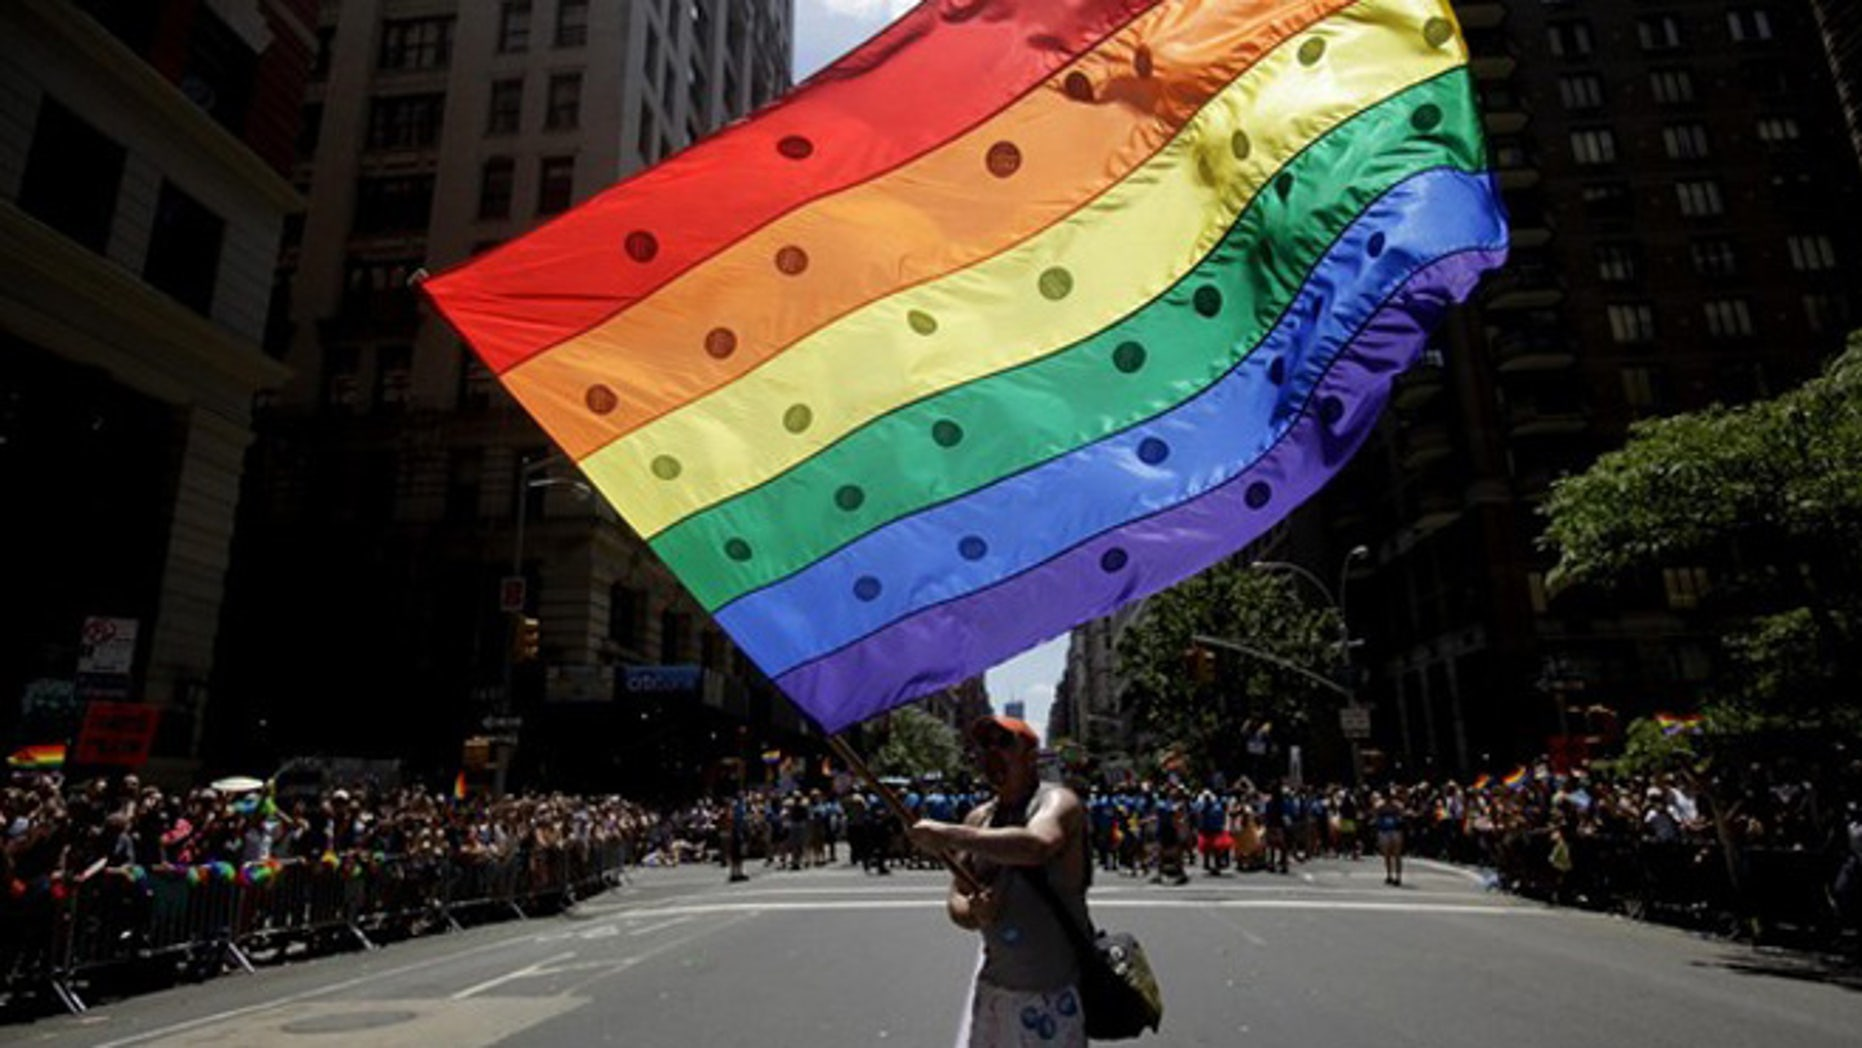 June 24, 2012: A man waves a large rainbow flag in the street during the Gay Pride Parade in New York.